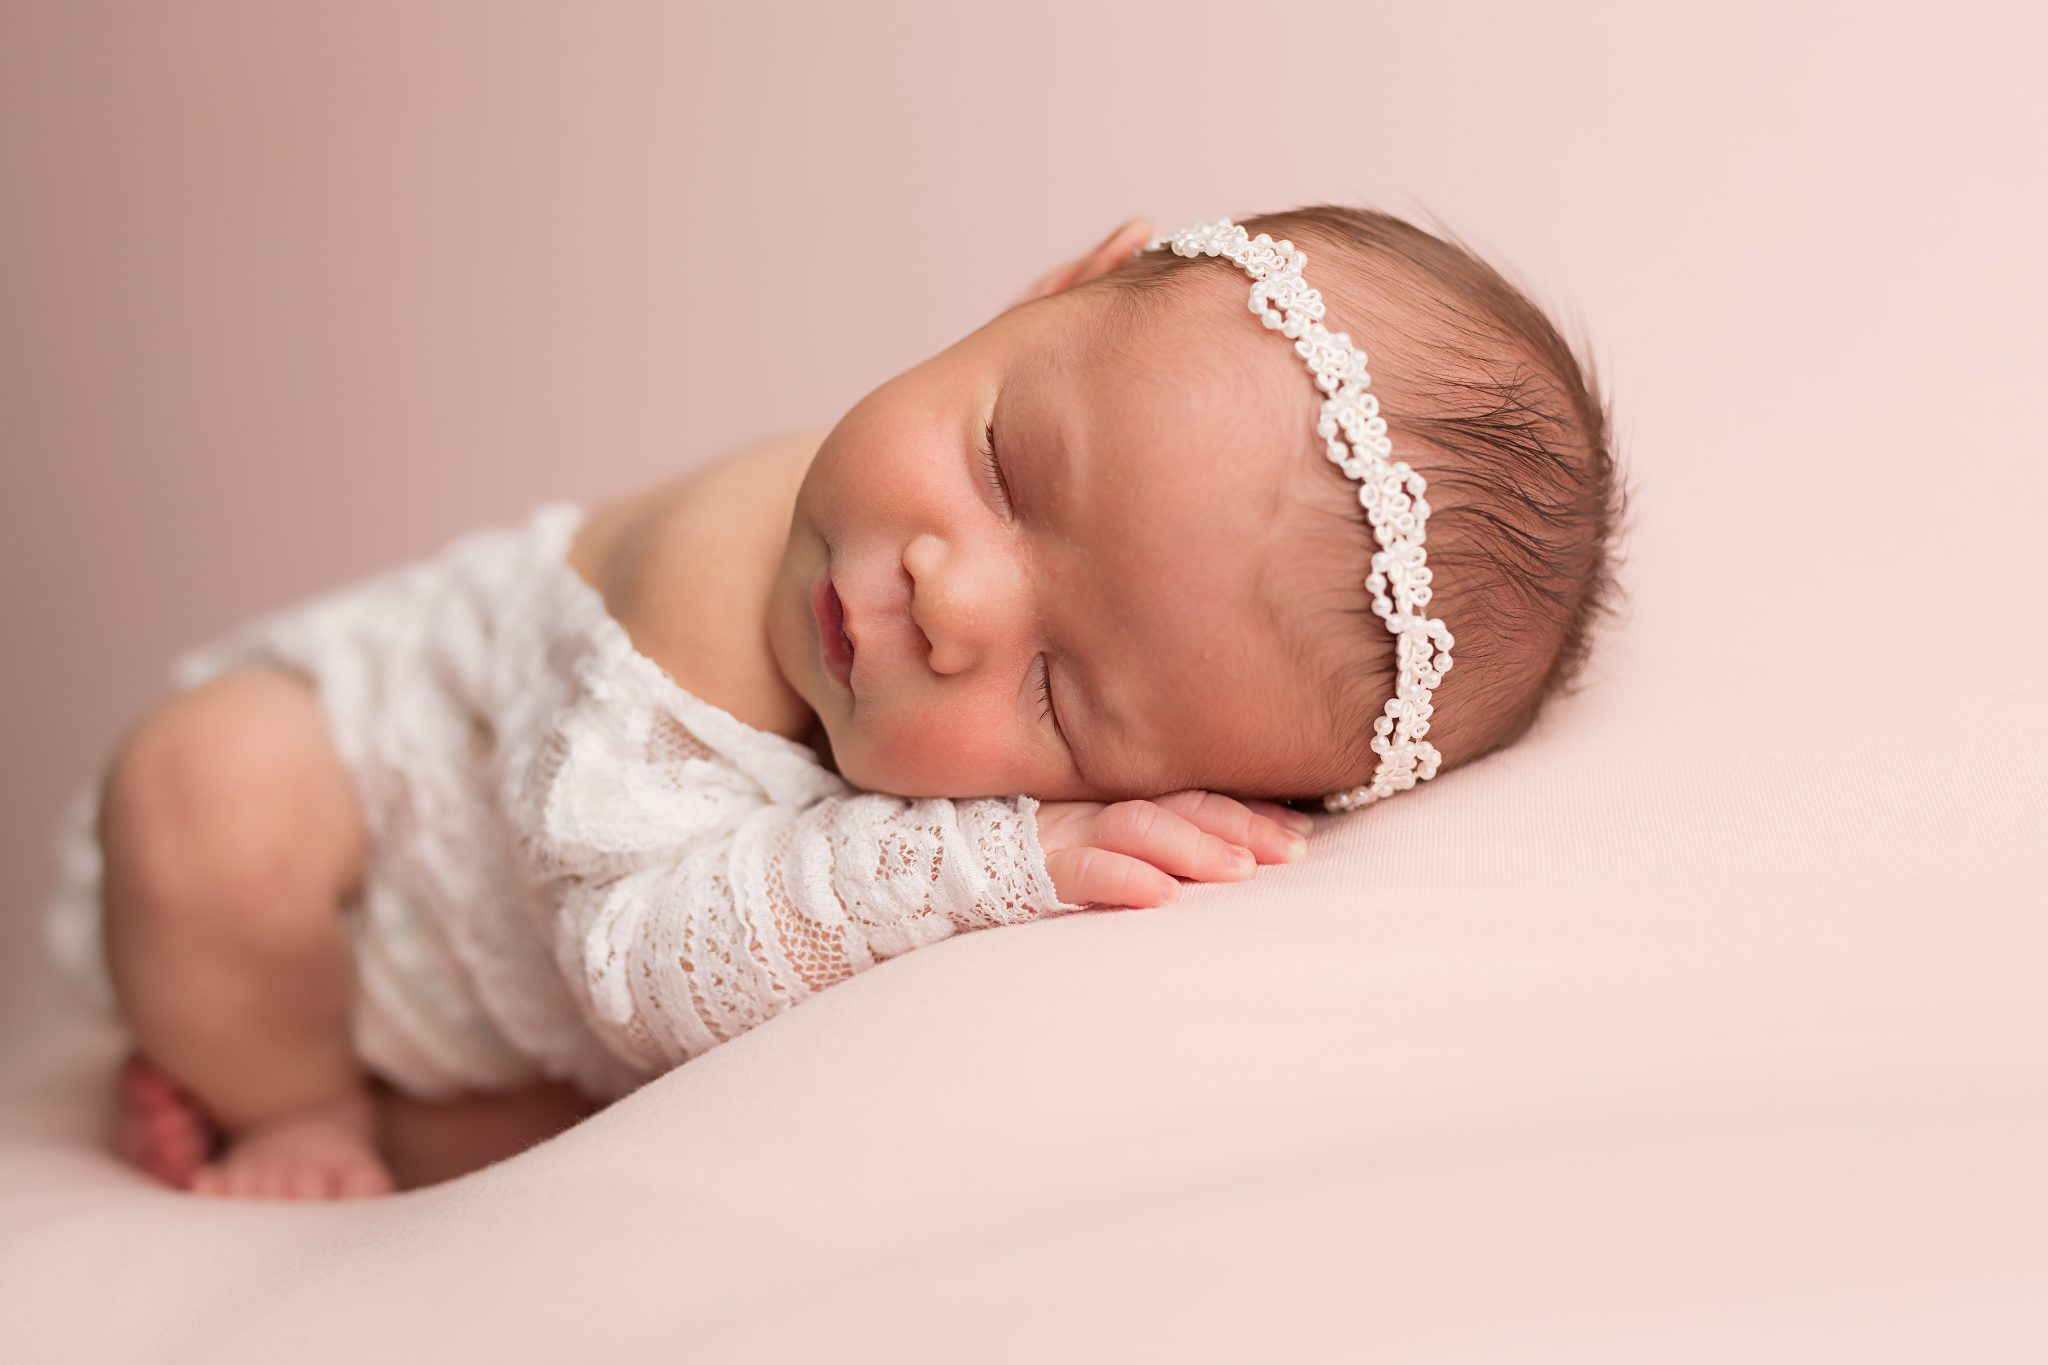 newborn baby girl in lace romper laying on pink packground